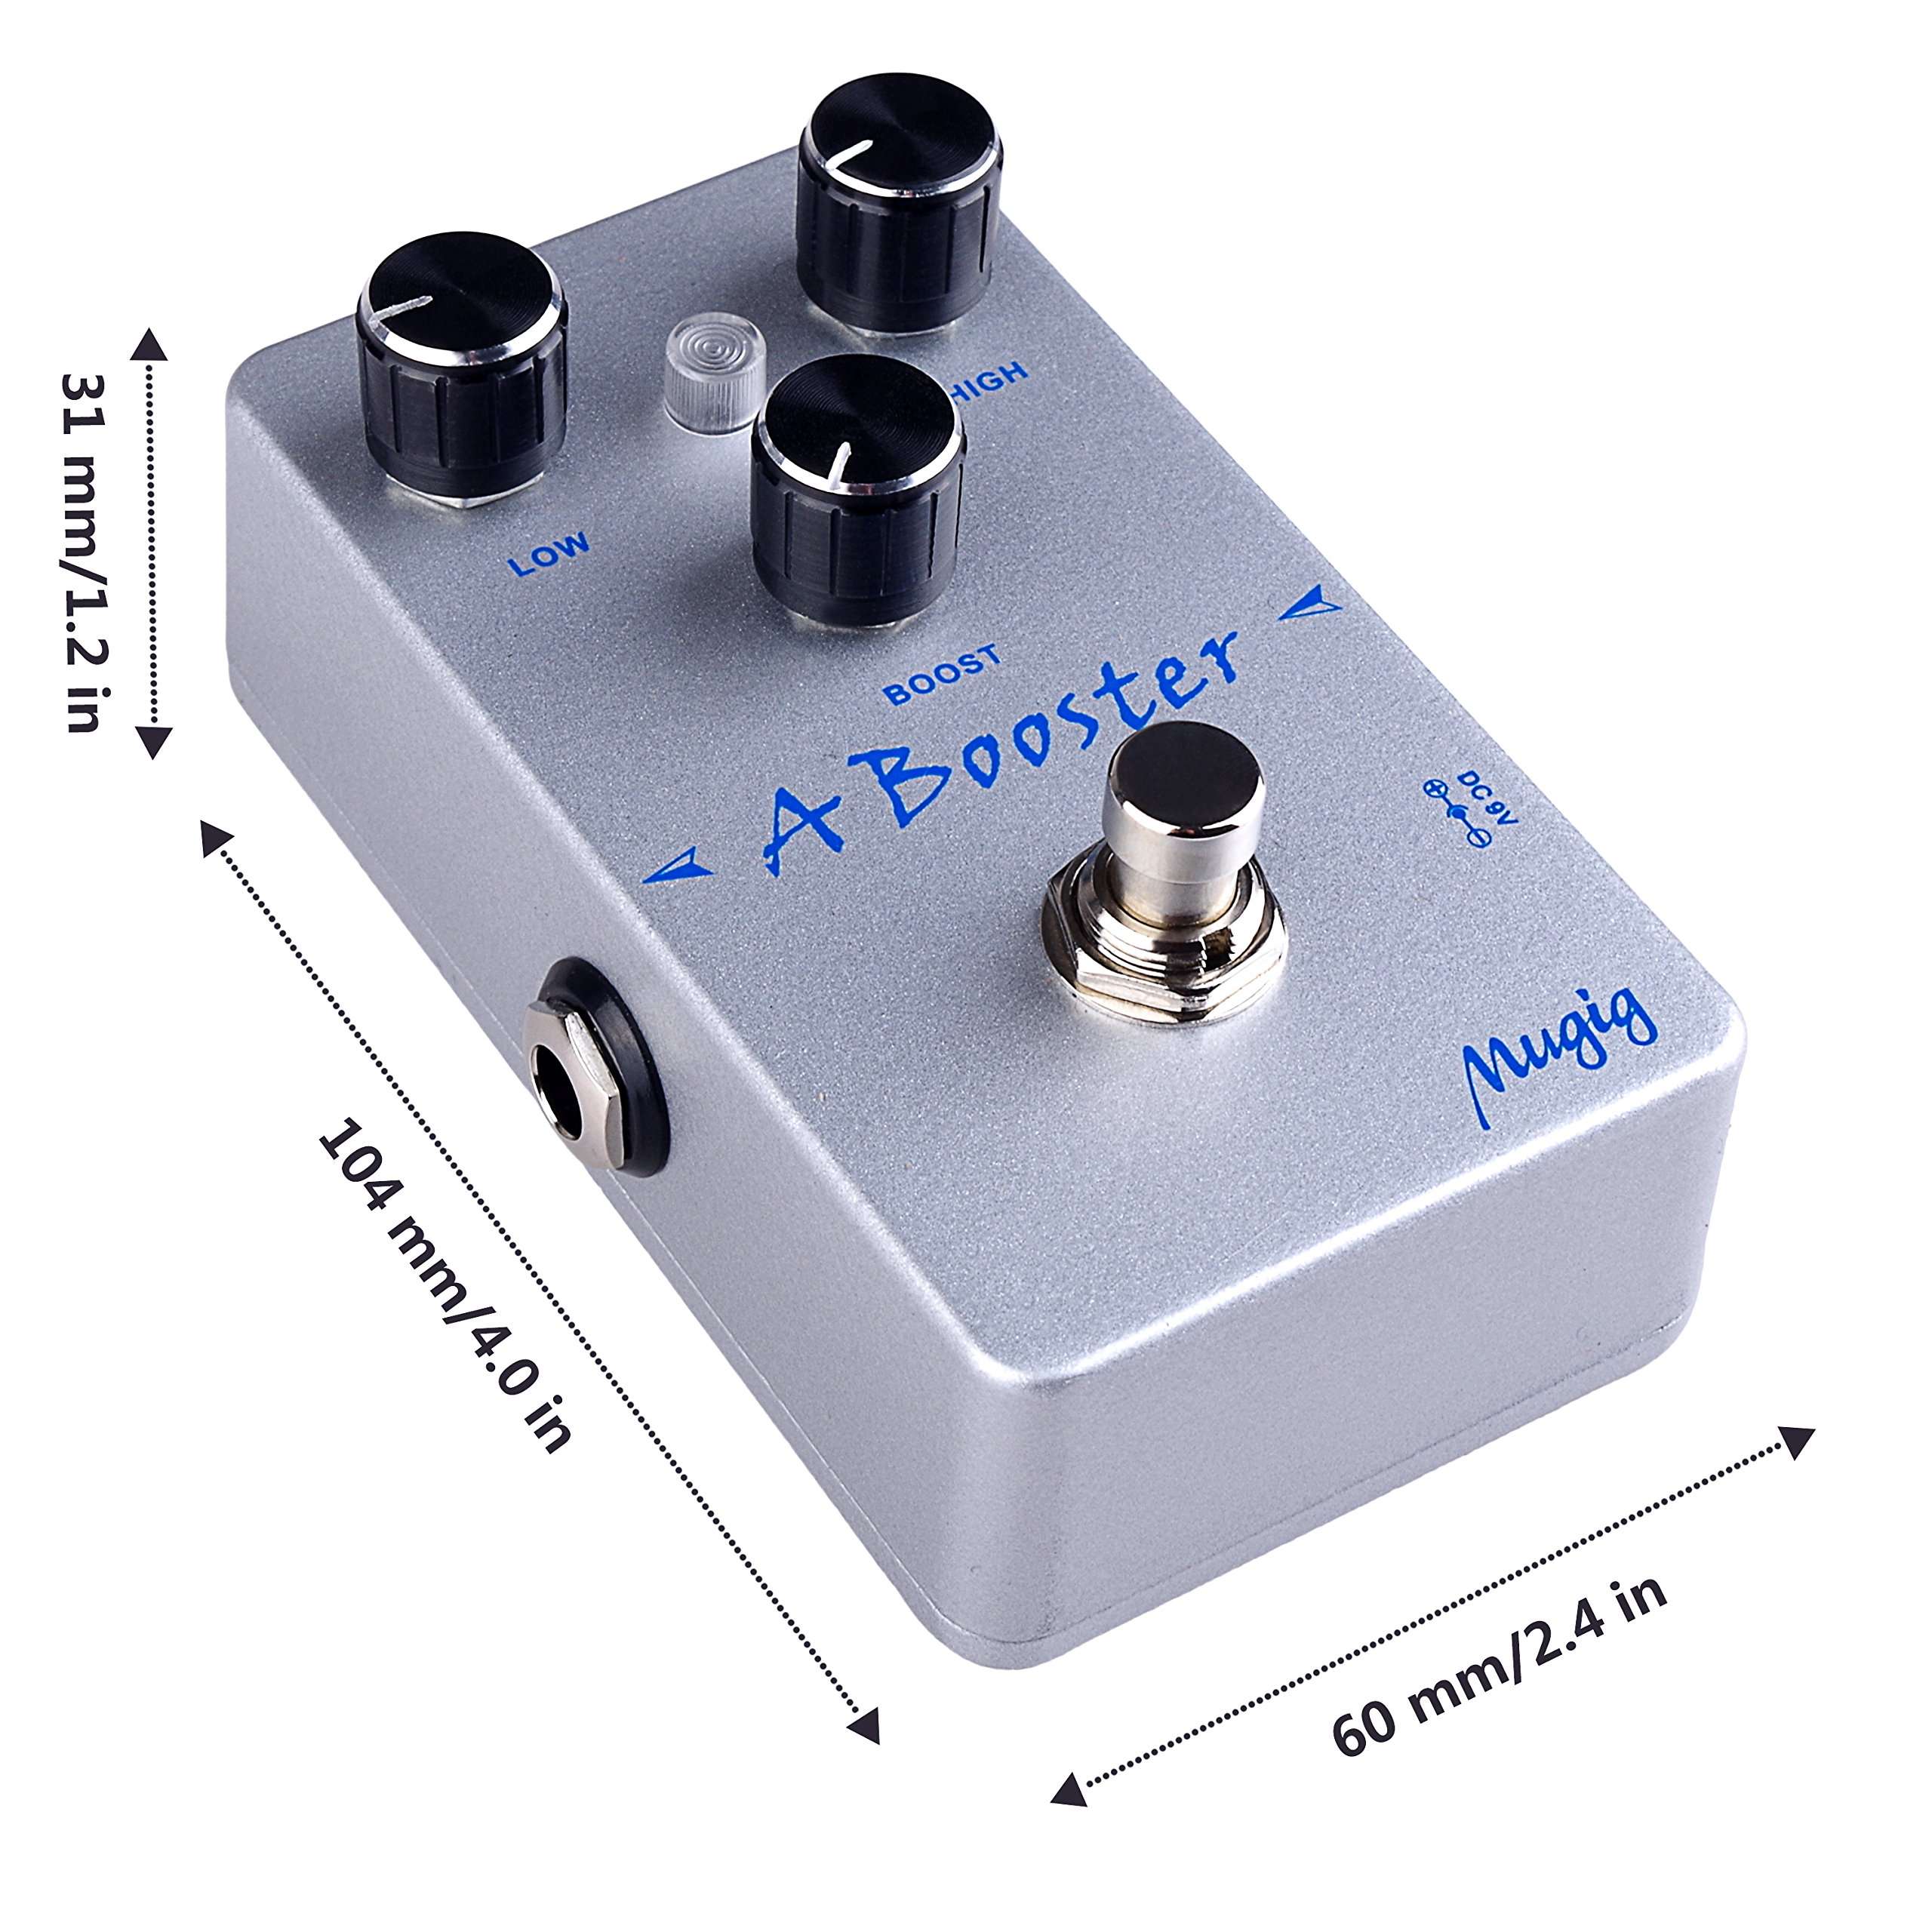 Mugig Booster Guitar Effect Pedal True Bypass Low High Boost Knob with LED light Rich Distortion Sound for Electronic Guitar